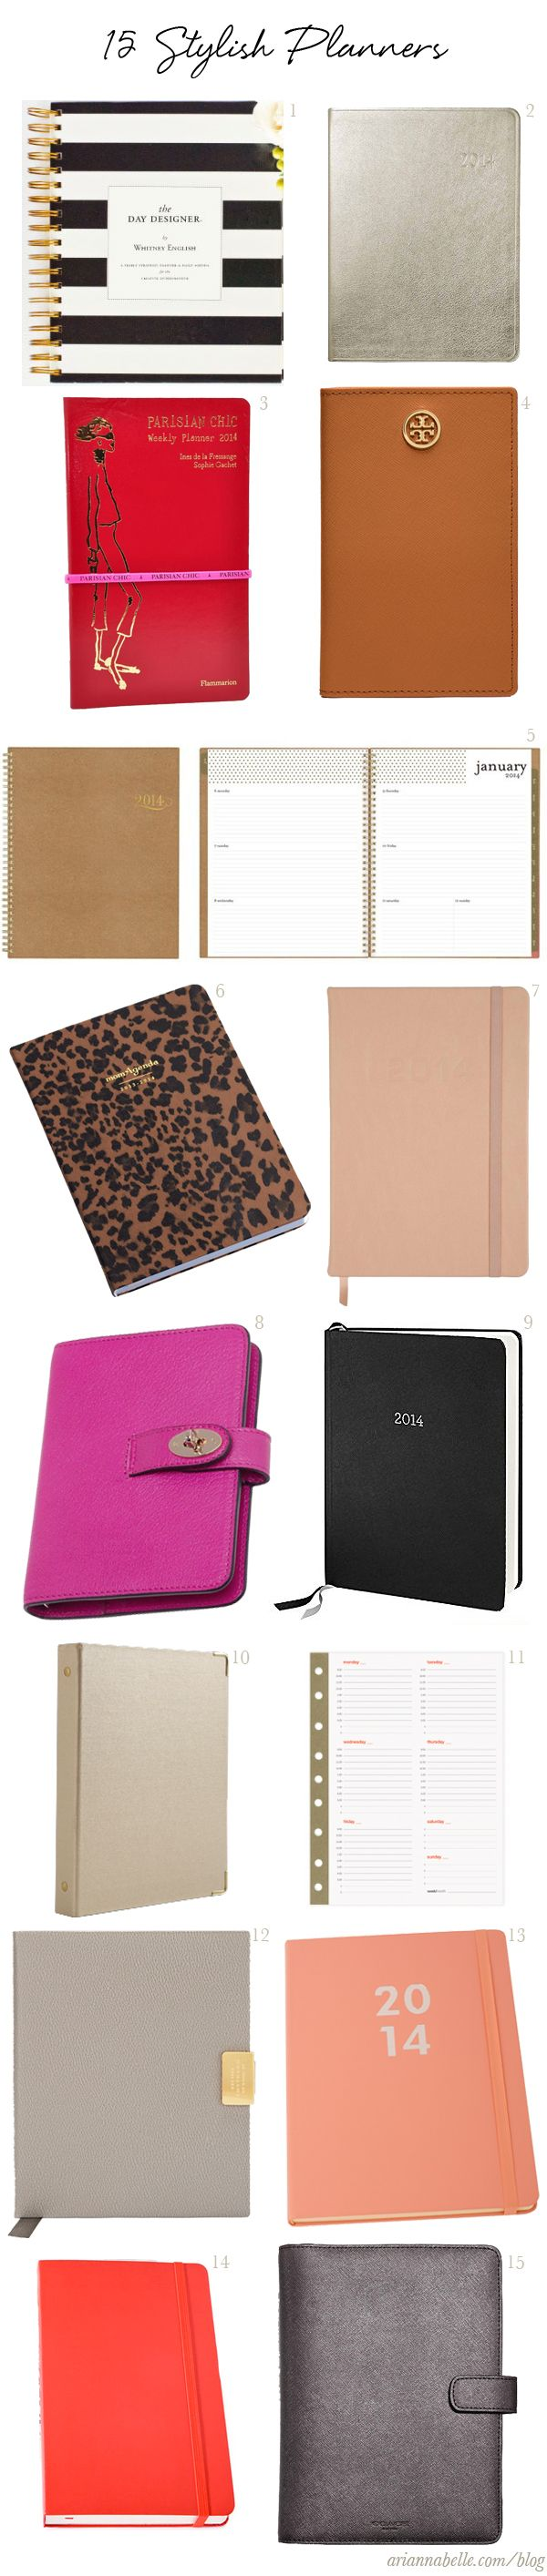 popular Journaling Planners      air jordans Diaries   supplies   amp  Stylish   and Diaries Planners  and      Agendas   Art Planners